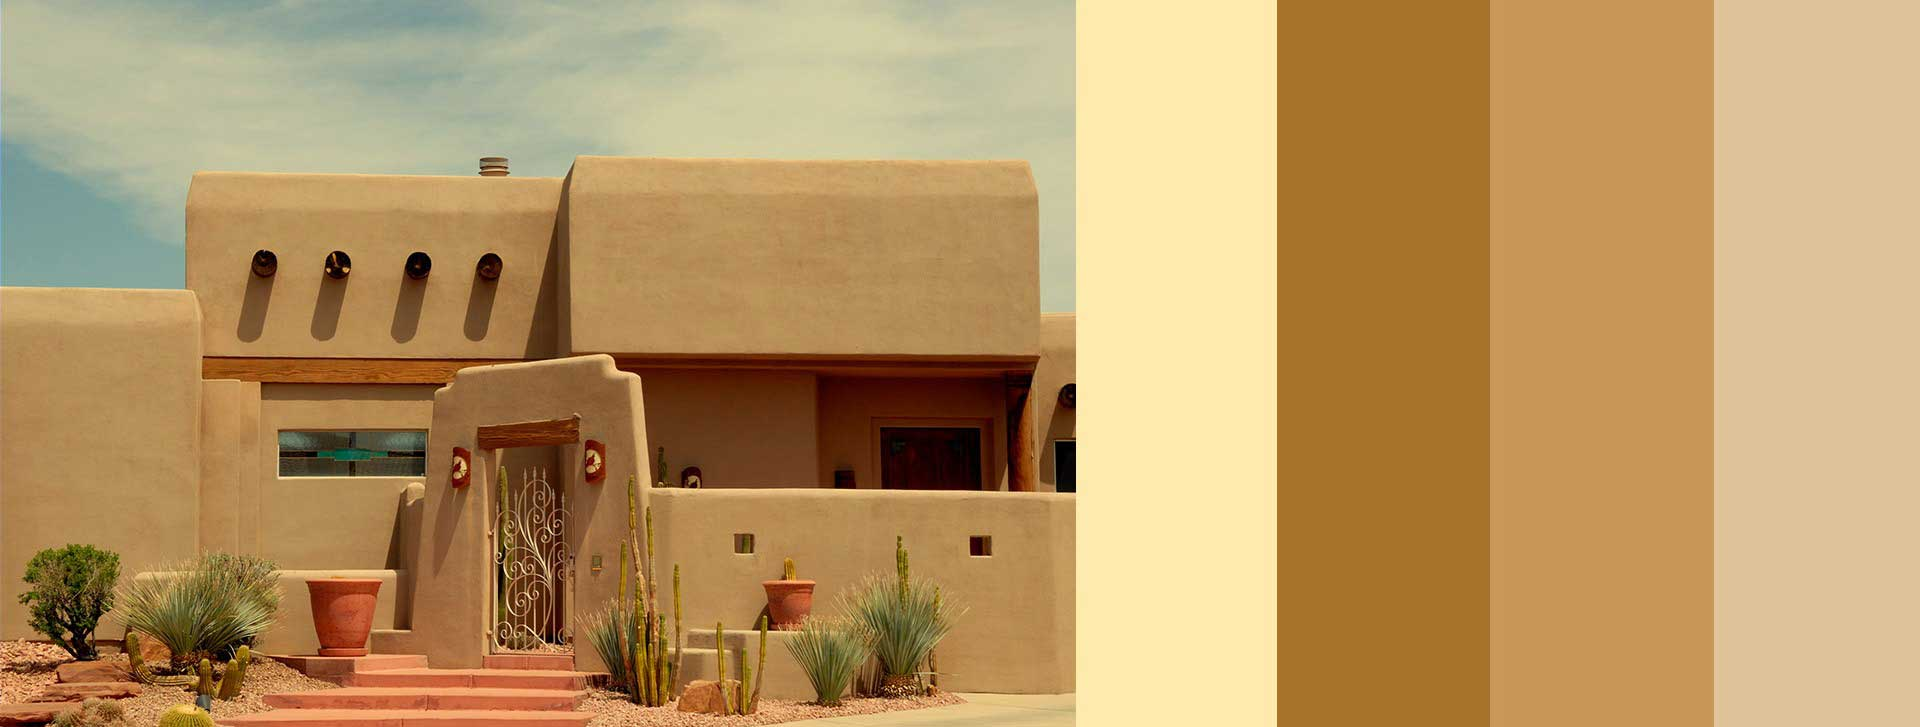 Replacement Windows And Home Improvements Albuquerque Nm